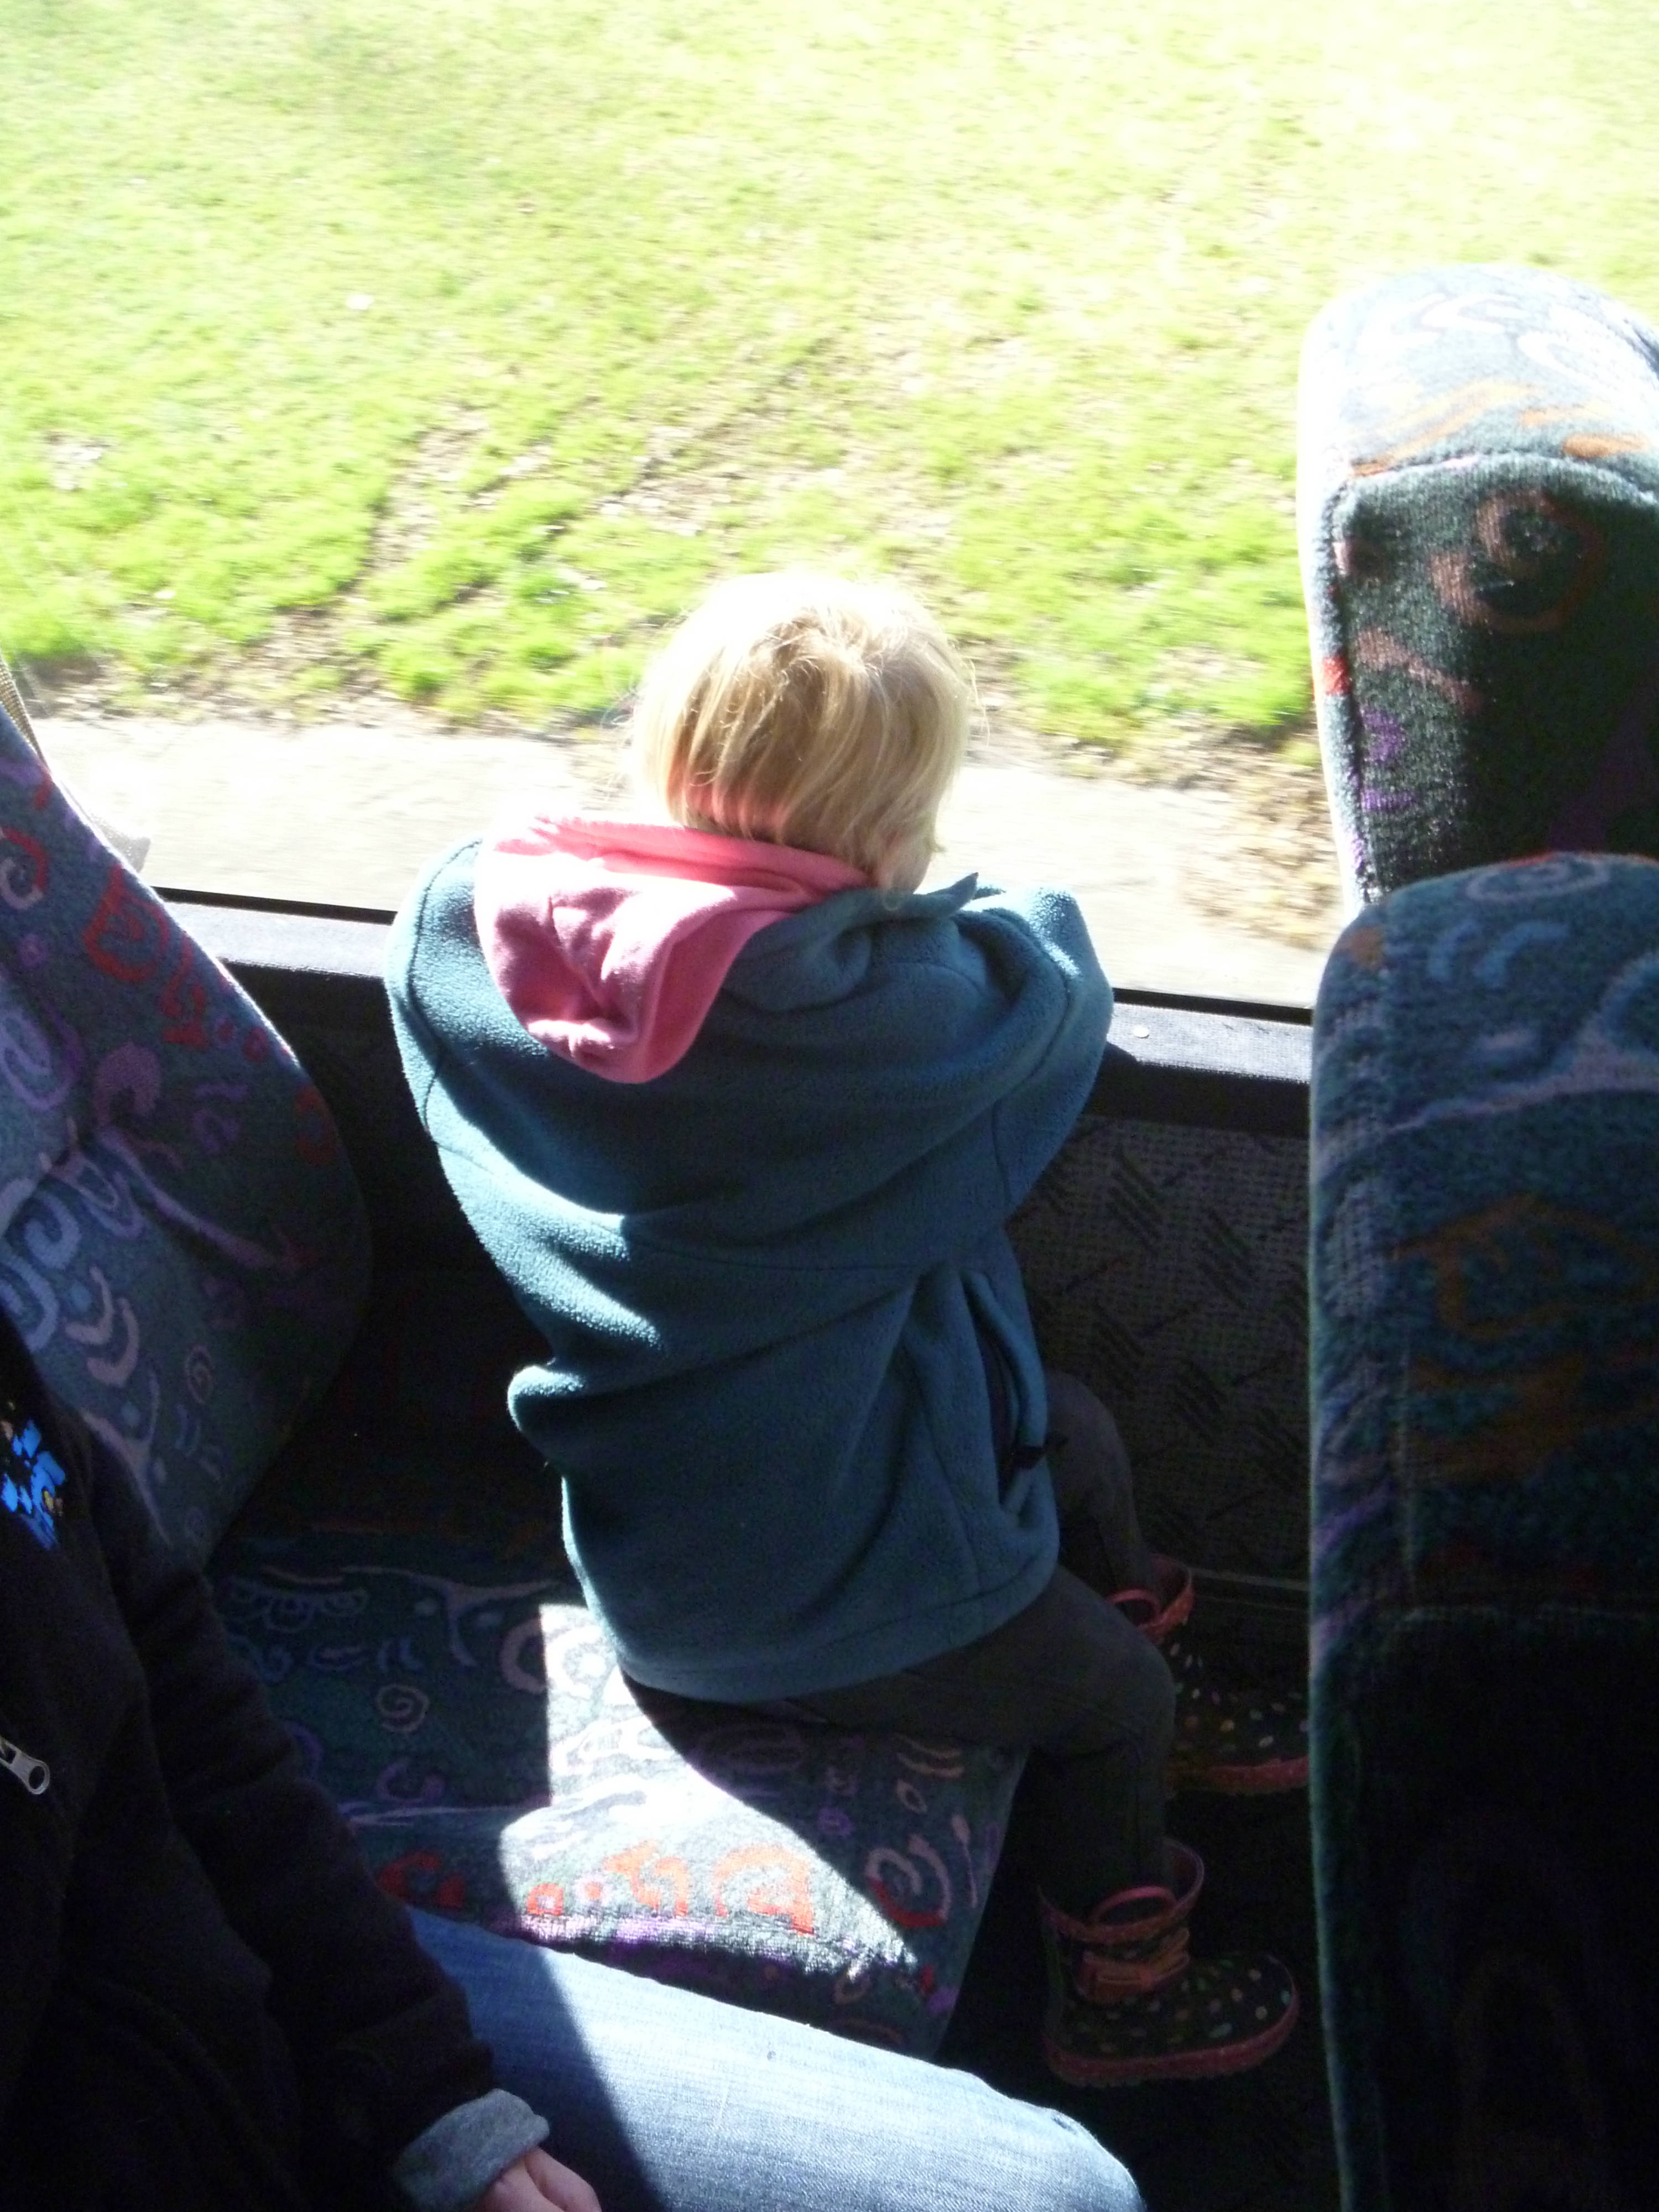 bus trip day 1.jpg - The Cambridge Early Learning Centre, childcare, ECE, and daycare located in Cambridge, Waikato, NZ